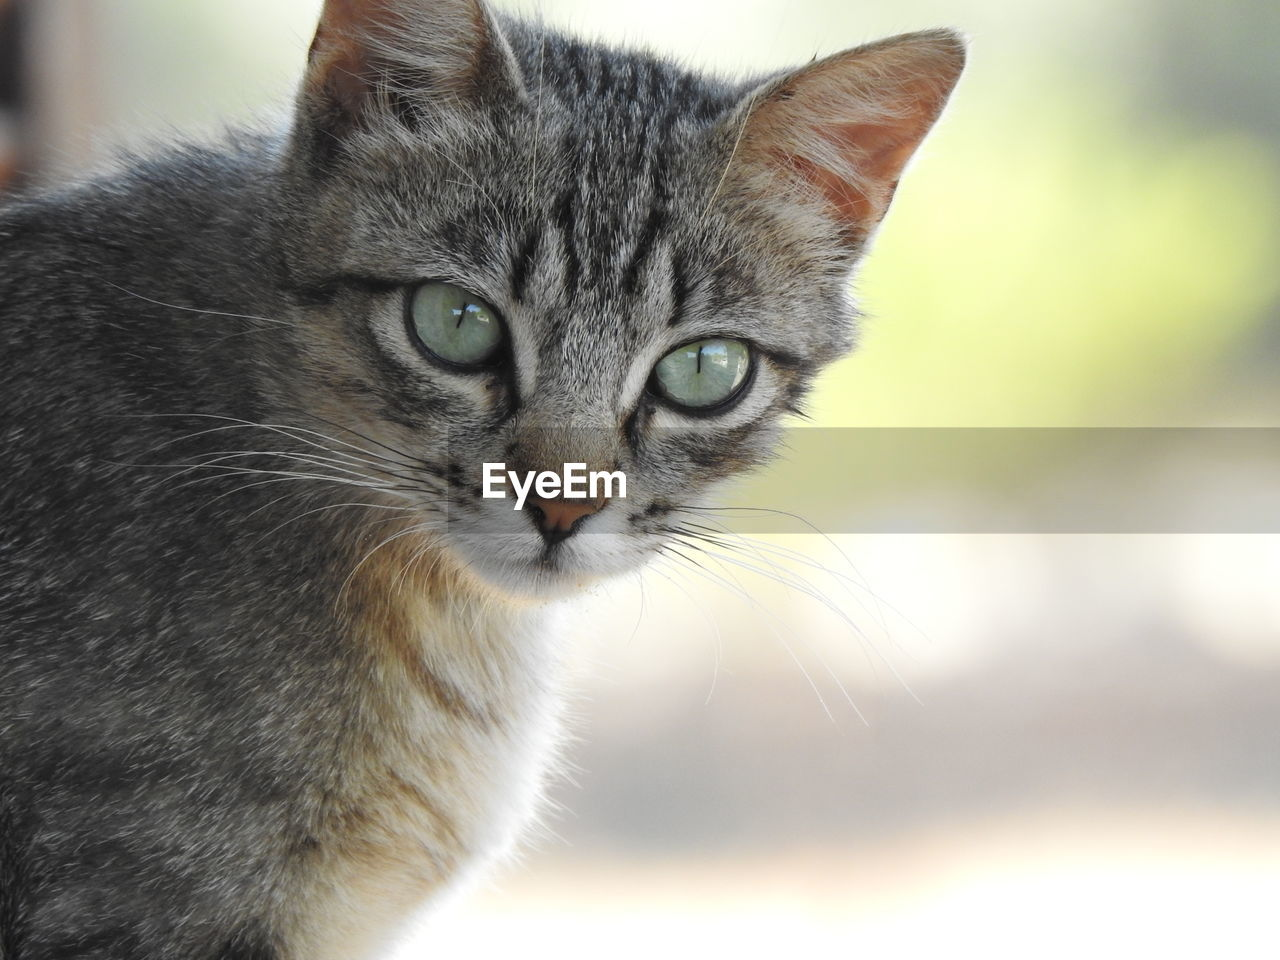 domestic, mammal, pets, cat, animal themes, animal, domestic animals, one animal, domestic cat, feline, vertebrate, whisker, close-up, focus on foreground, portrait, looking at camera, no people, animal body part, day, animal head, animal eye, yellow eyes, tabby